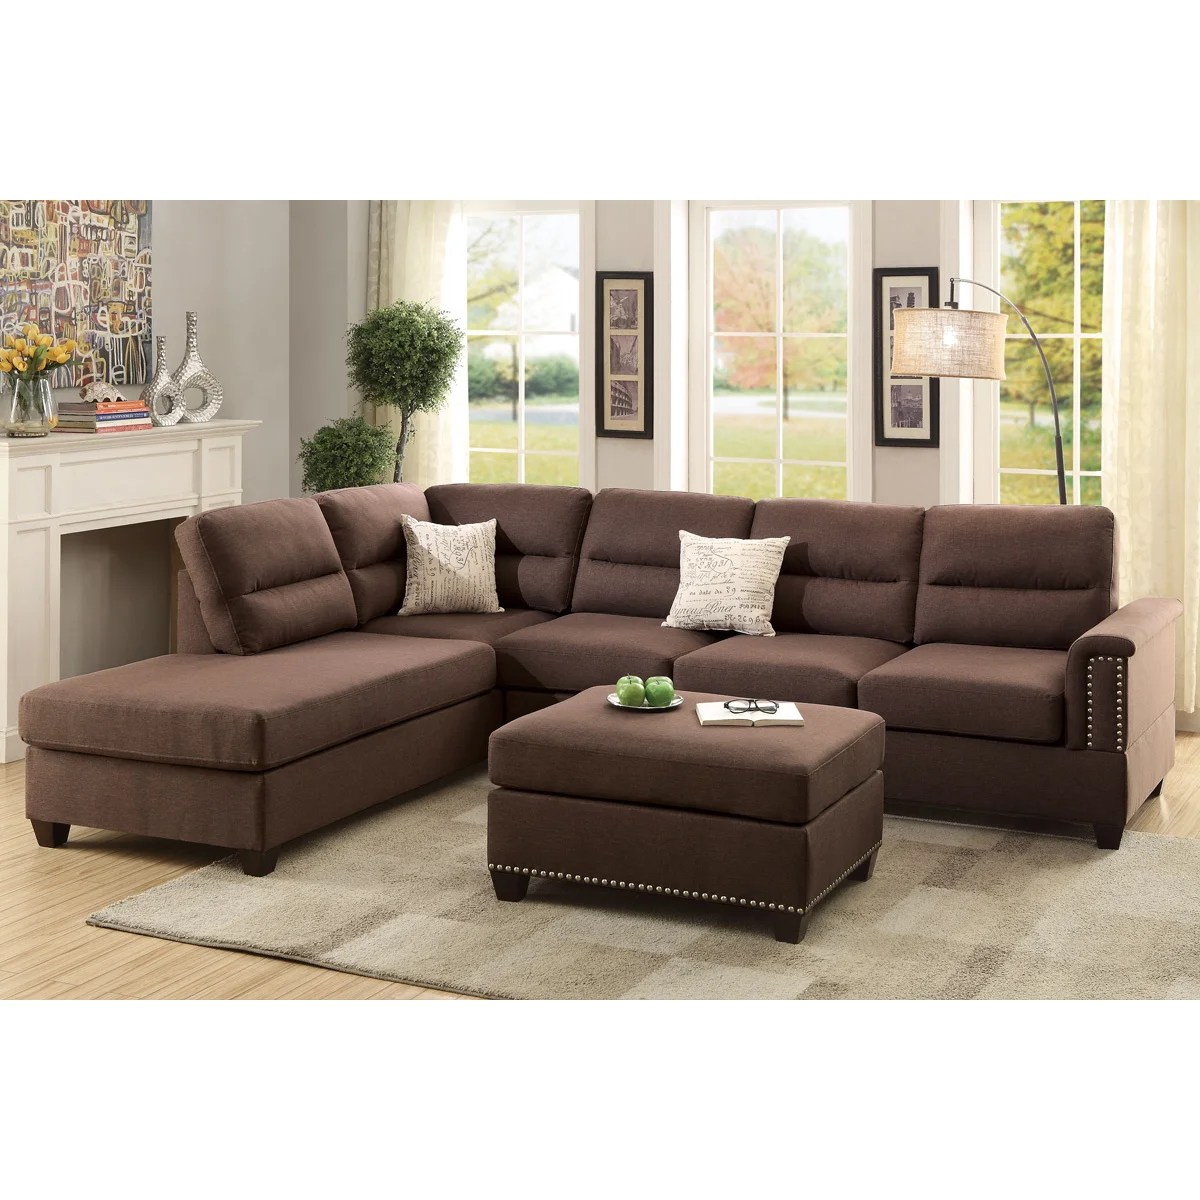 Collections Of Chaise Sectional With Ottoman Dahba